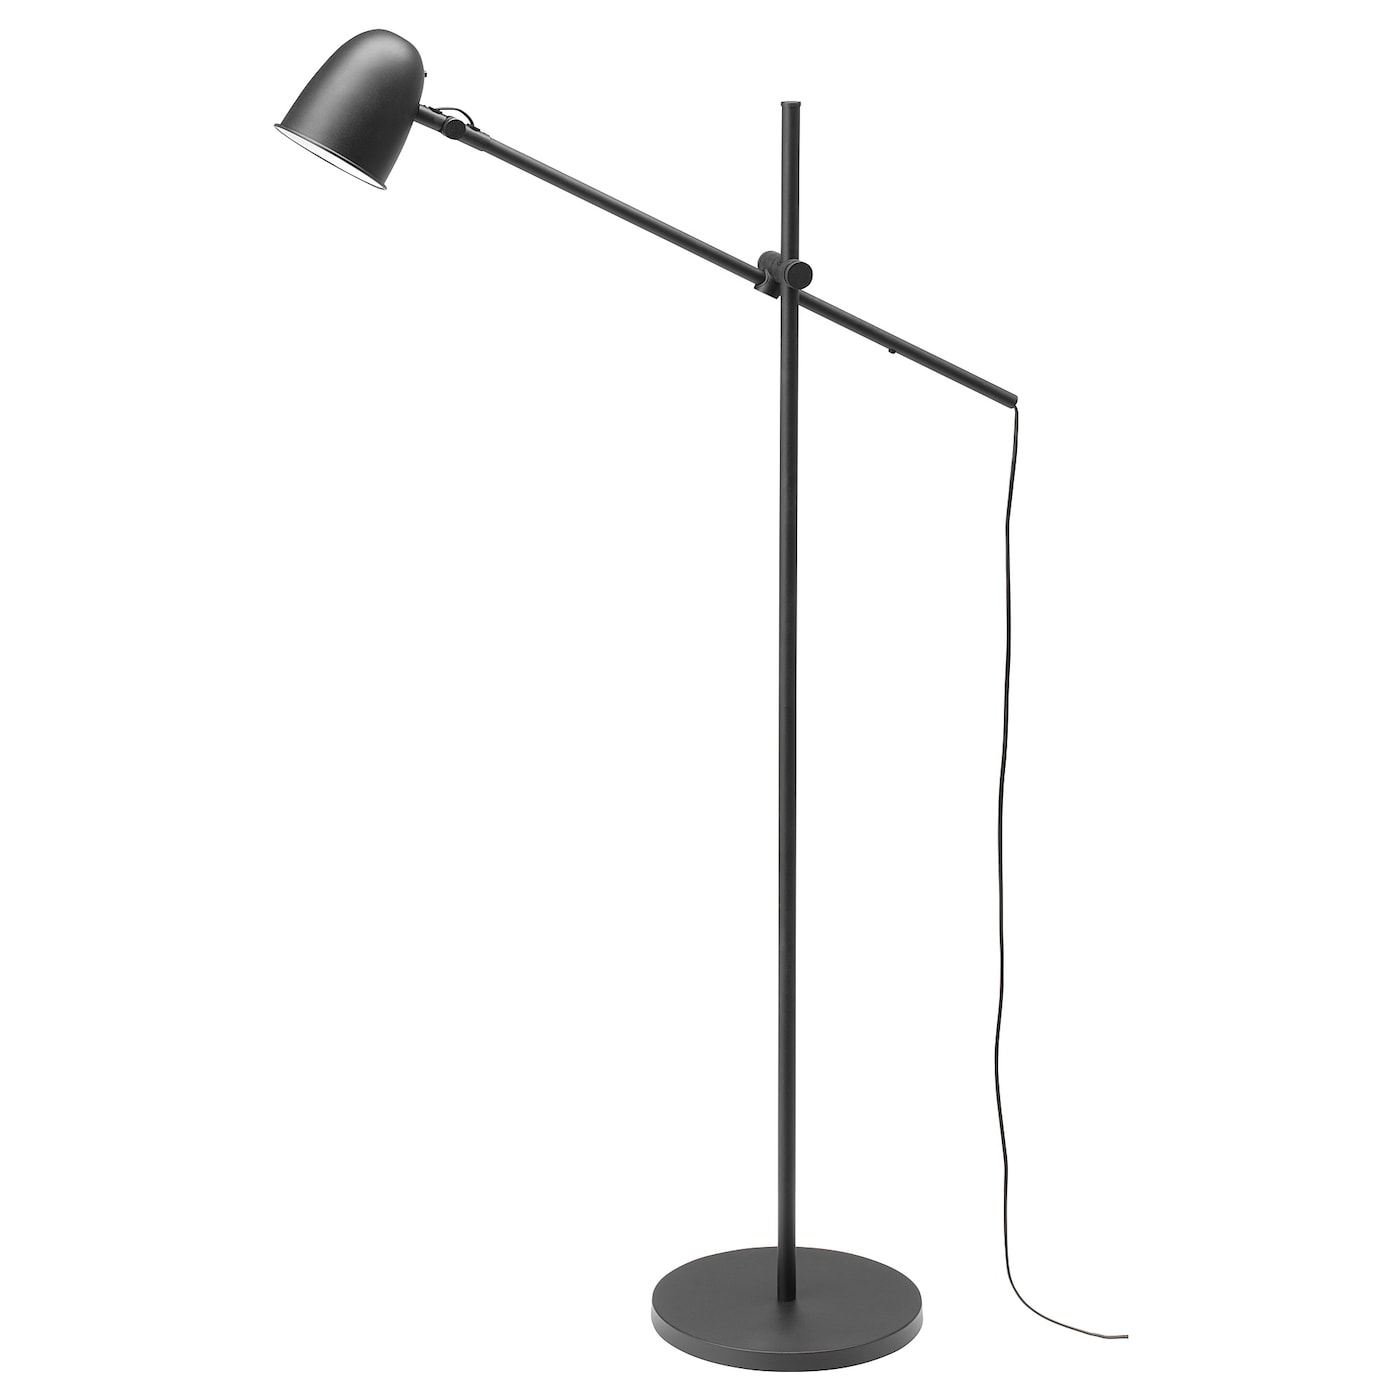 IKEA SKURUP floor/reading lamp Provides a directed light that is great for reading.